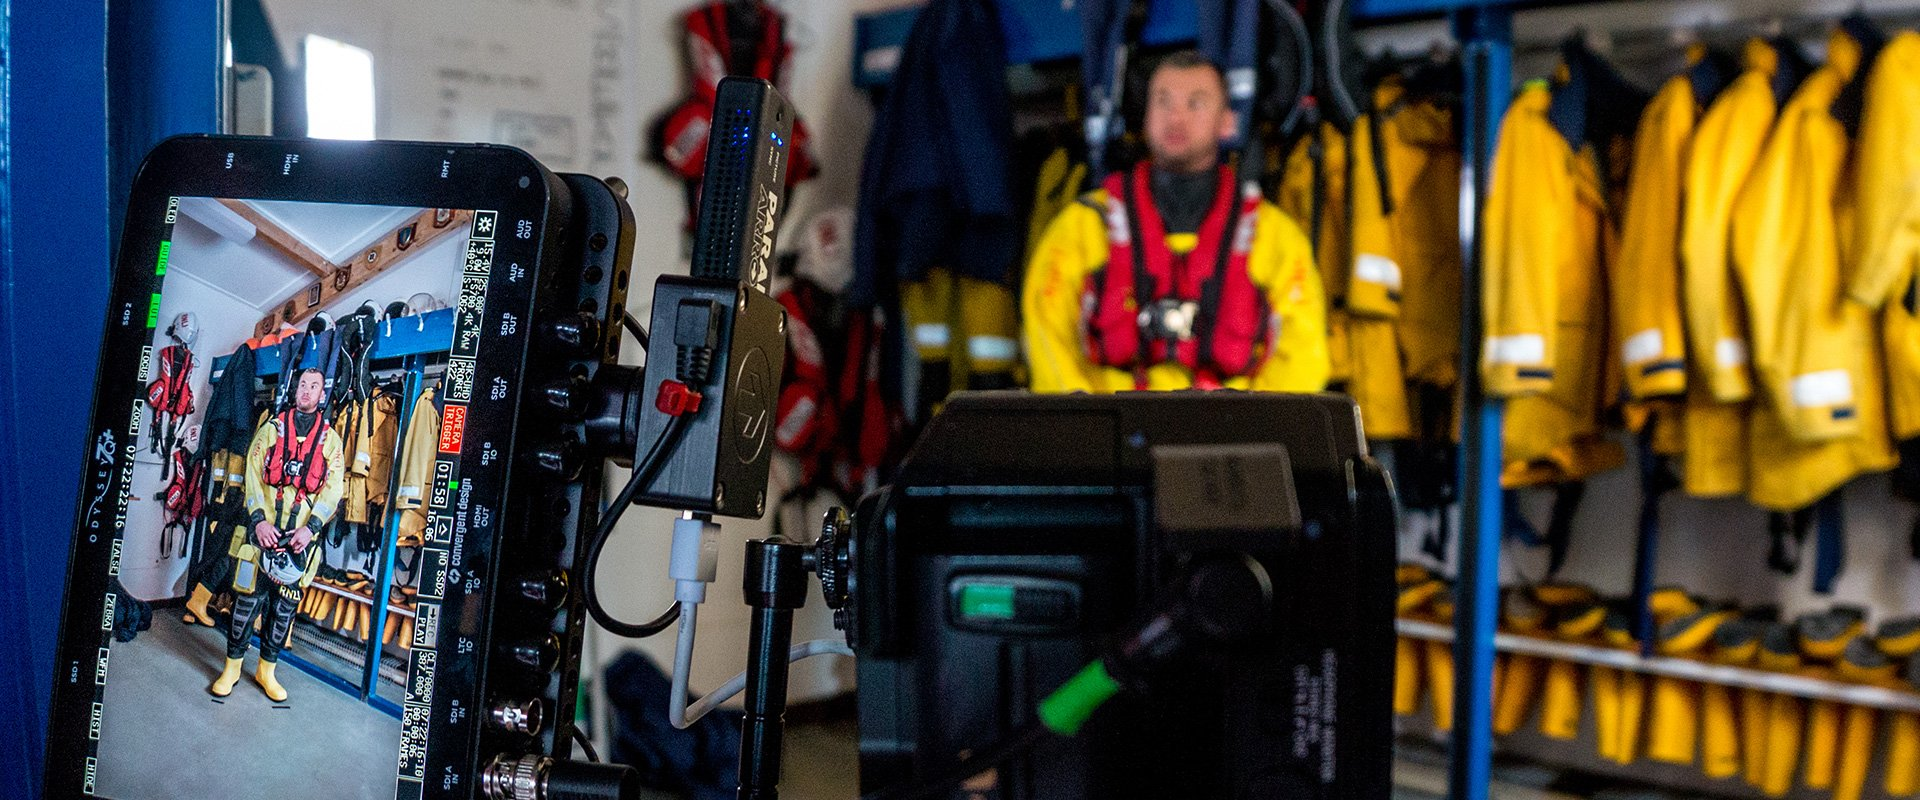 RNLI Barry Island Visitor Centre filming crew for interactive digital screen game